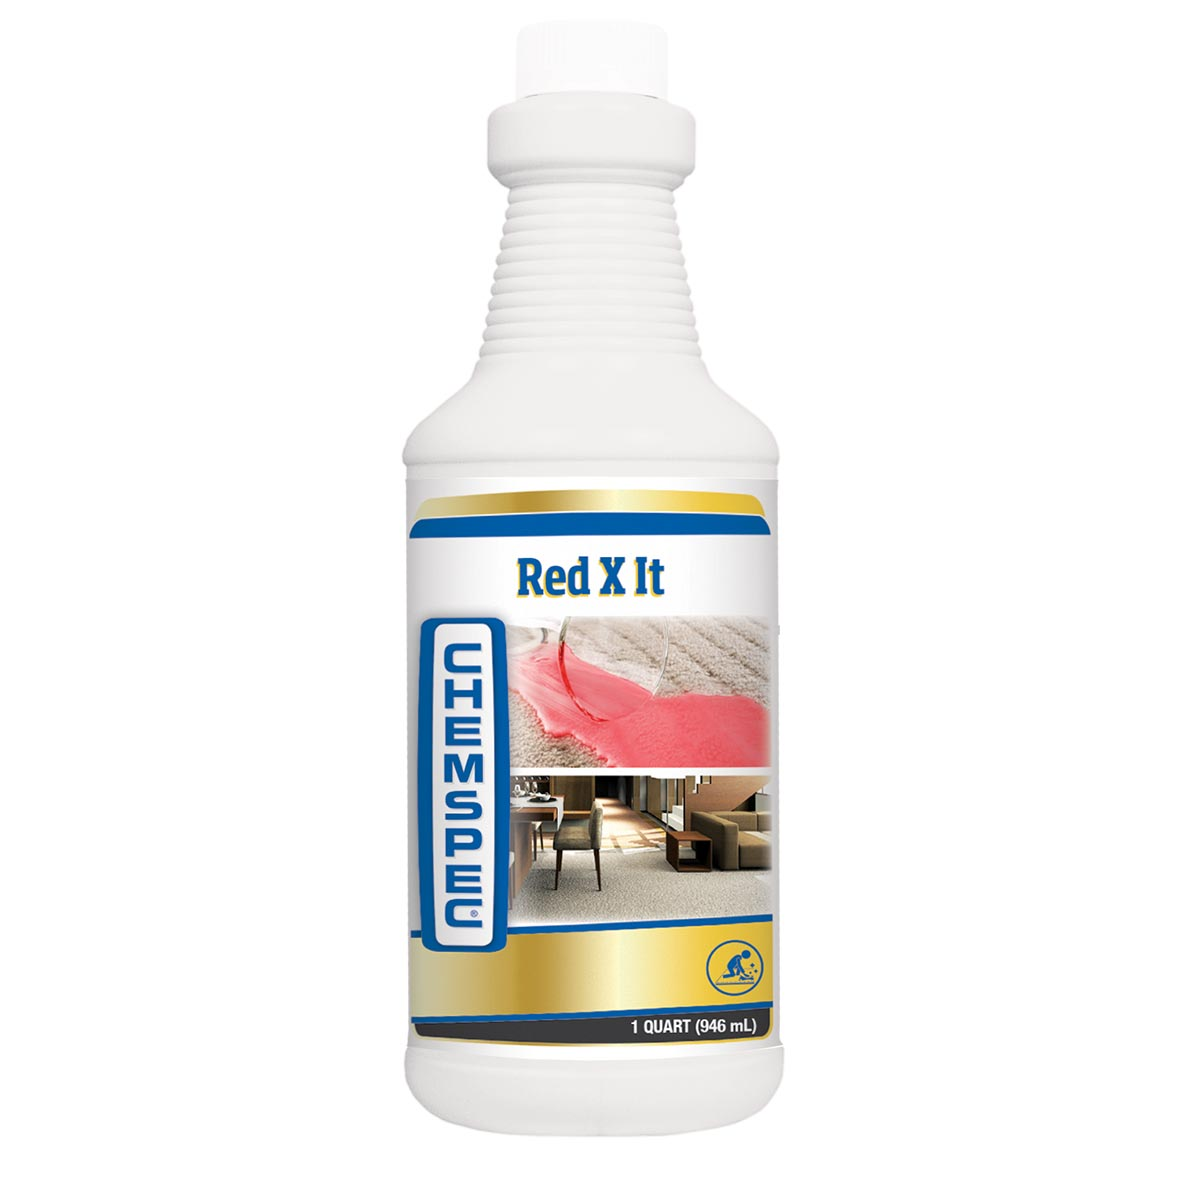 Chemspec RED X IT Sapphire Scientific 76-310 RedXit Red Stain Remover (1 Quart) UPC 847136000920